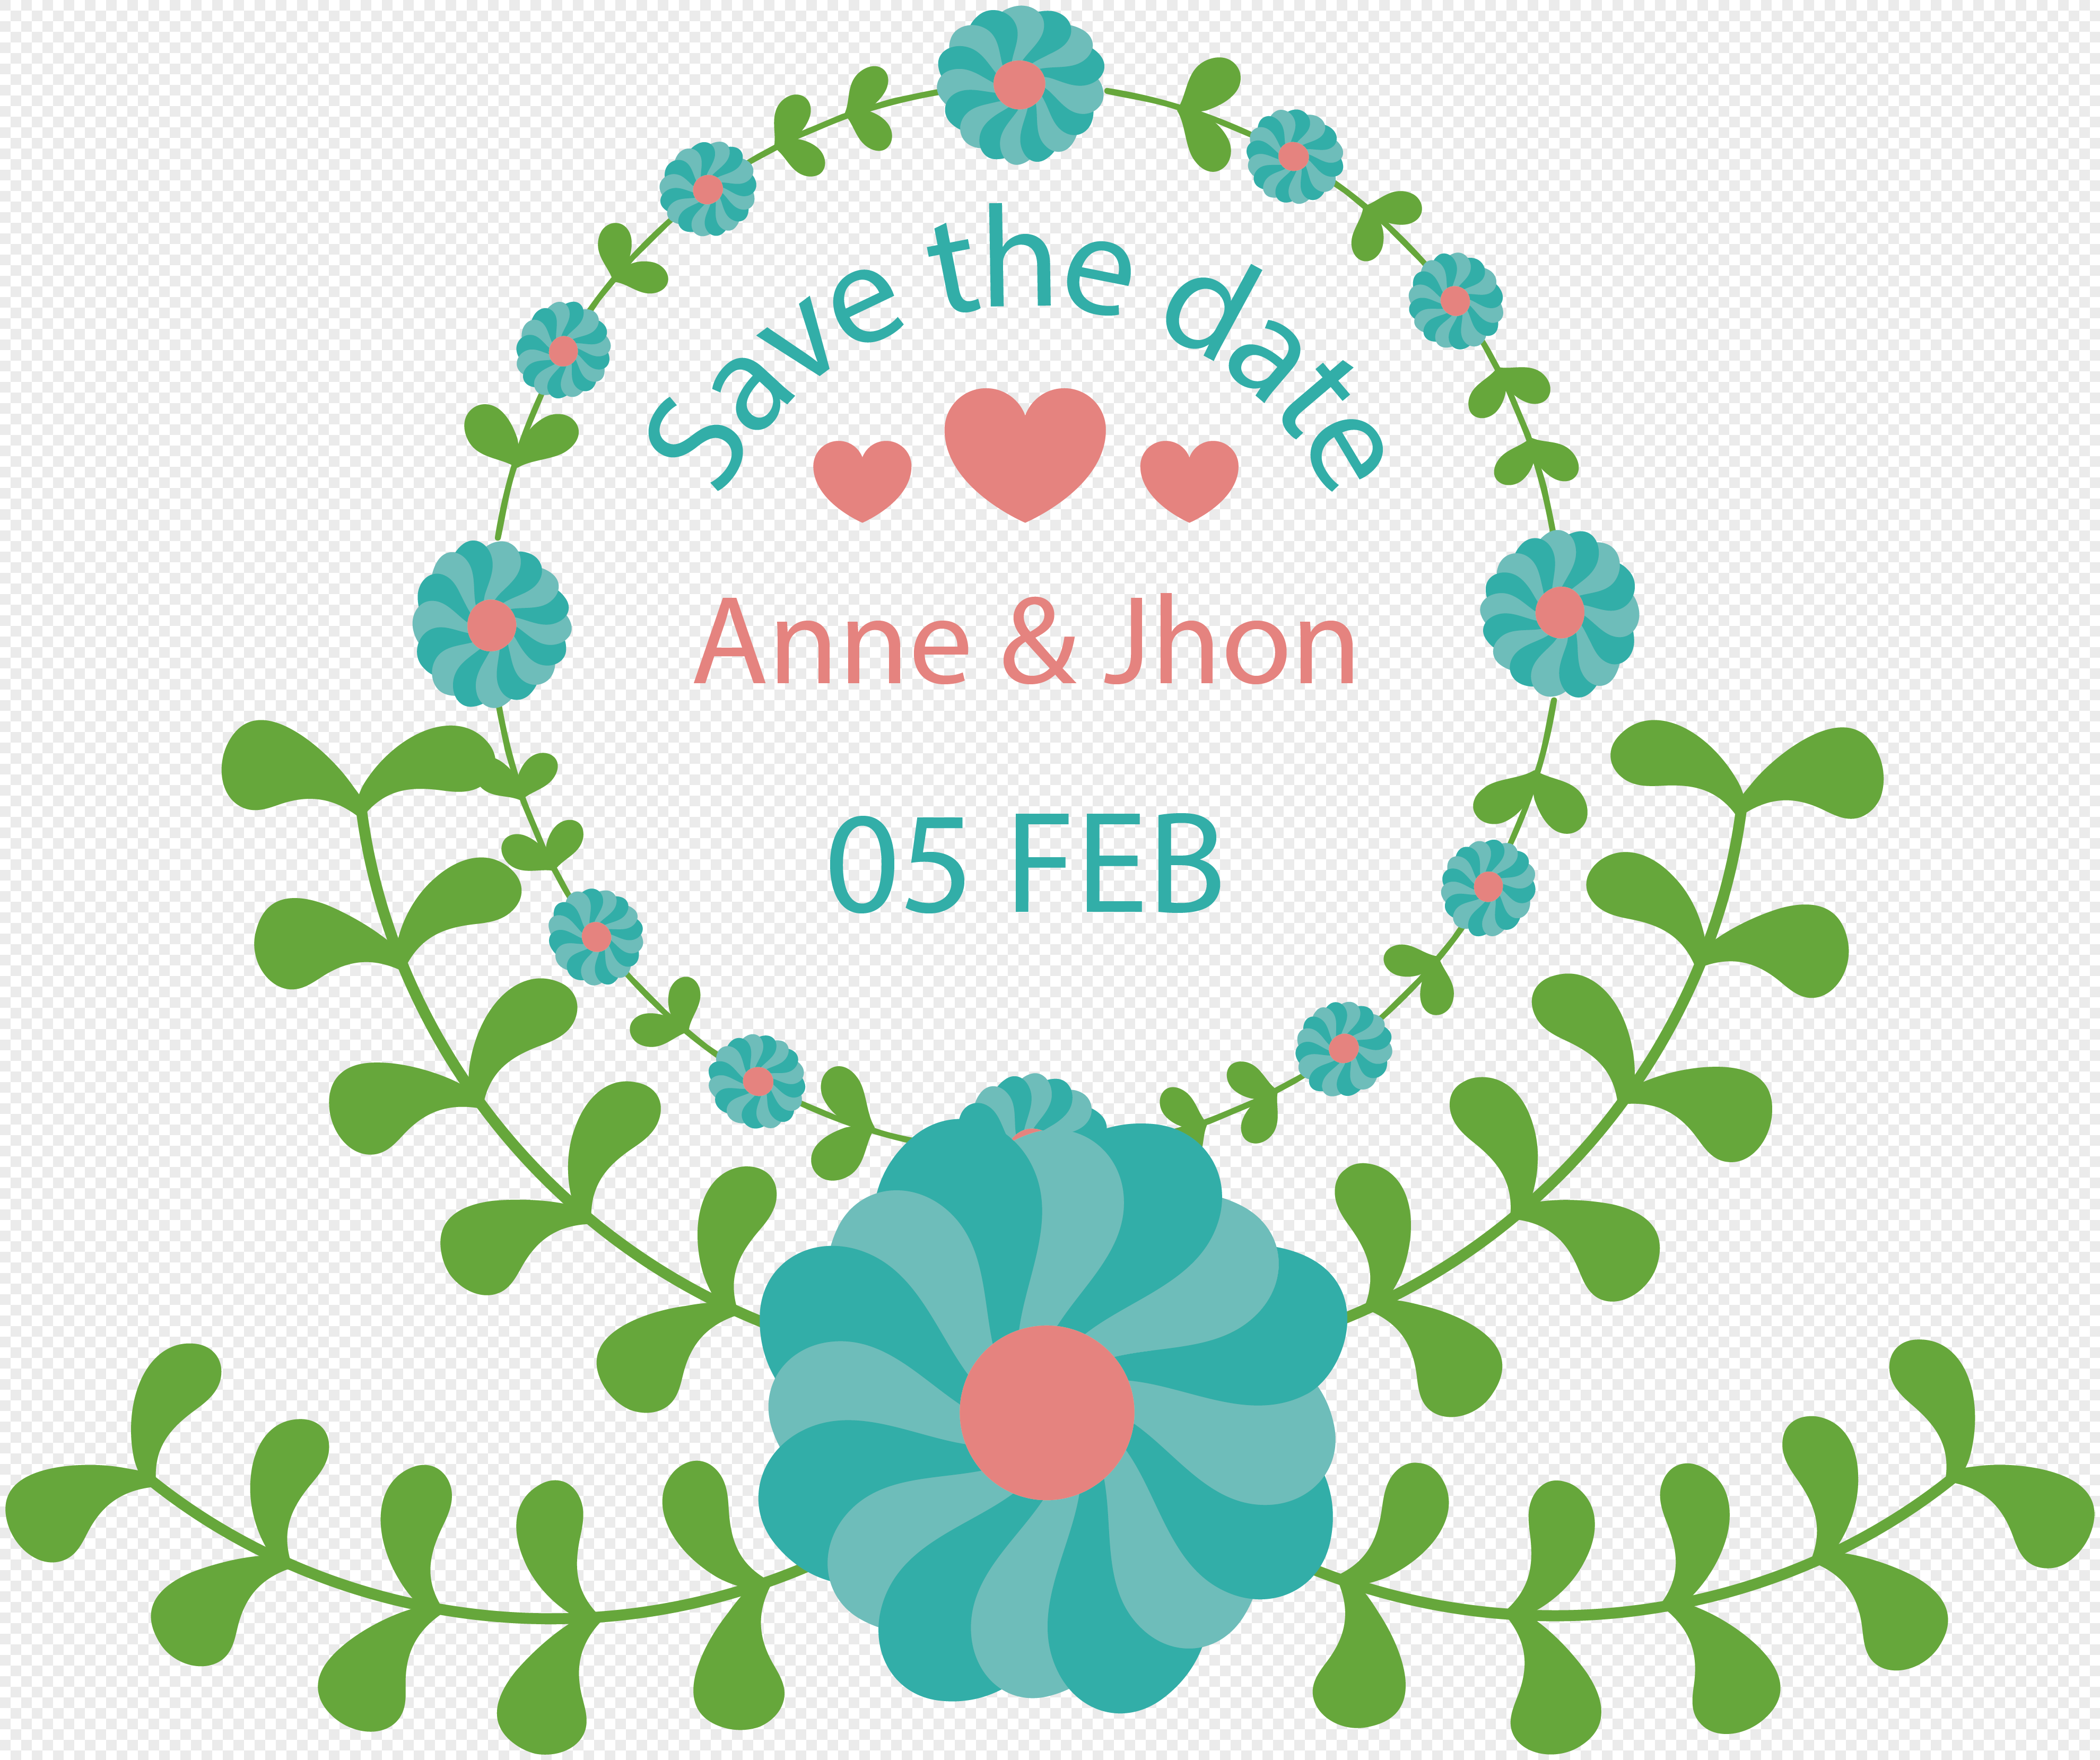 Wedding Flower Border Material Png Imagepicture Free Download